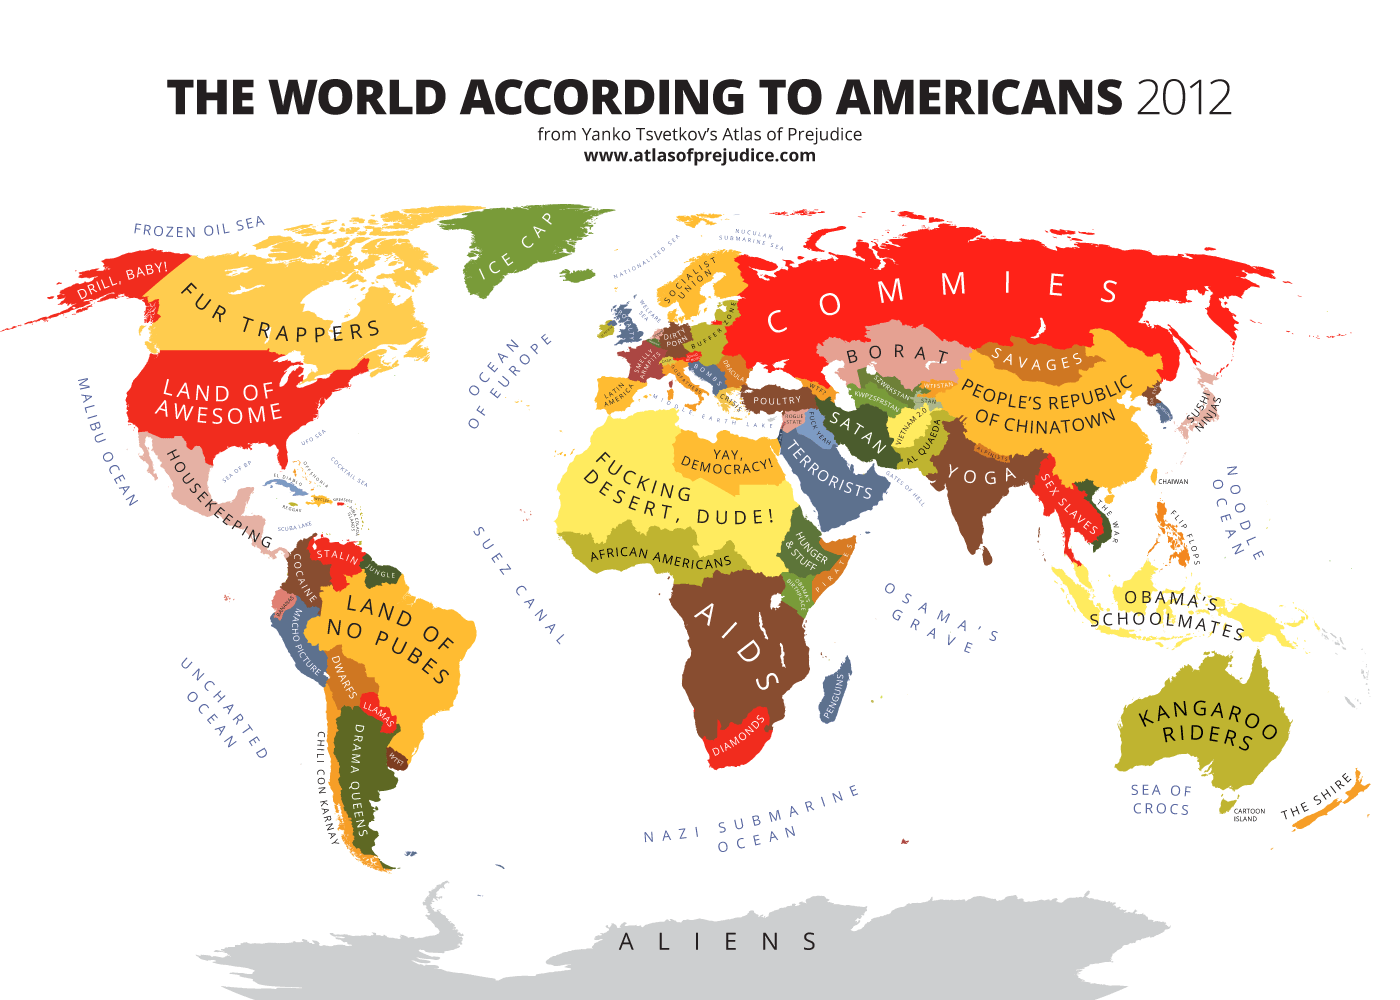 The American World Atlas Of Prejudice